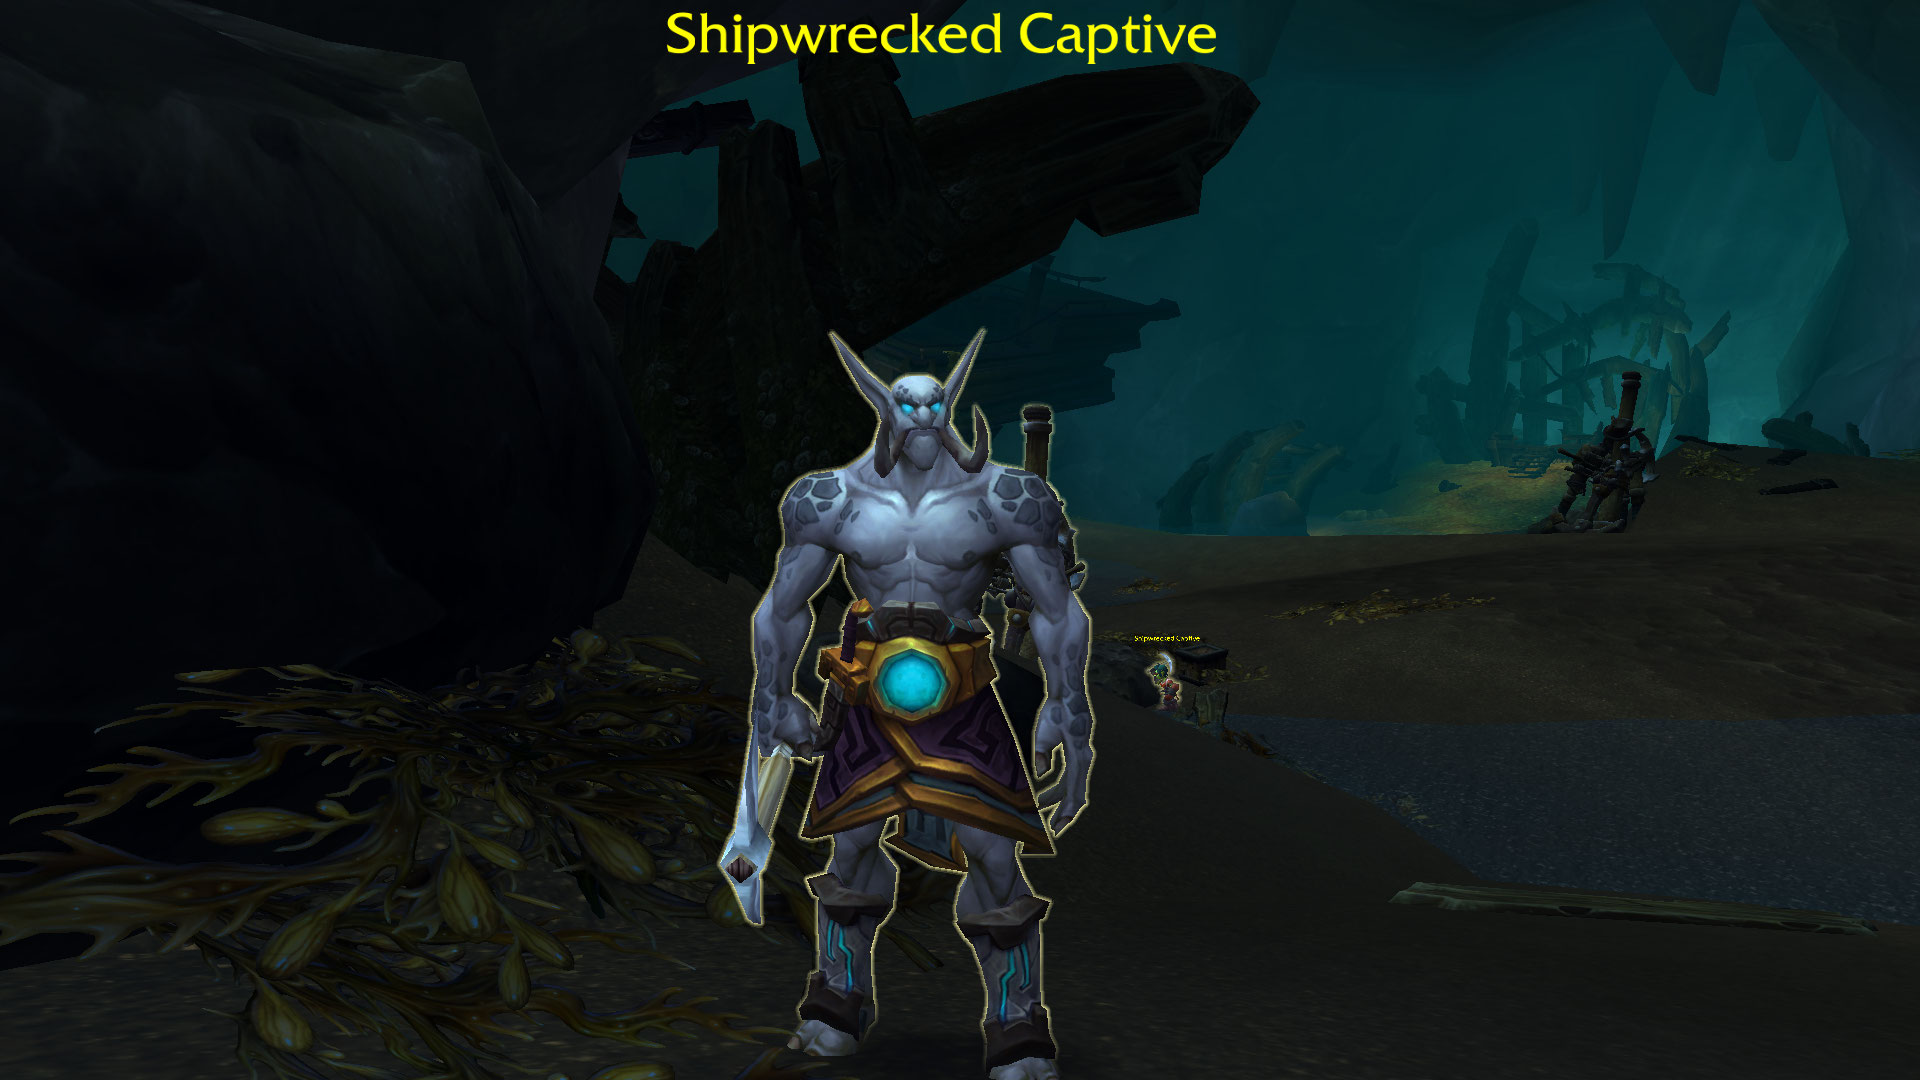 shipwrecked-captive-zandalari